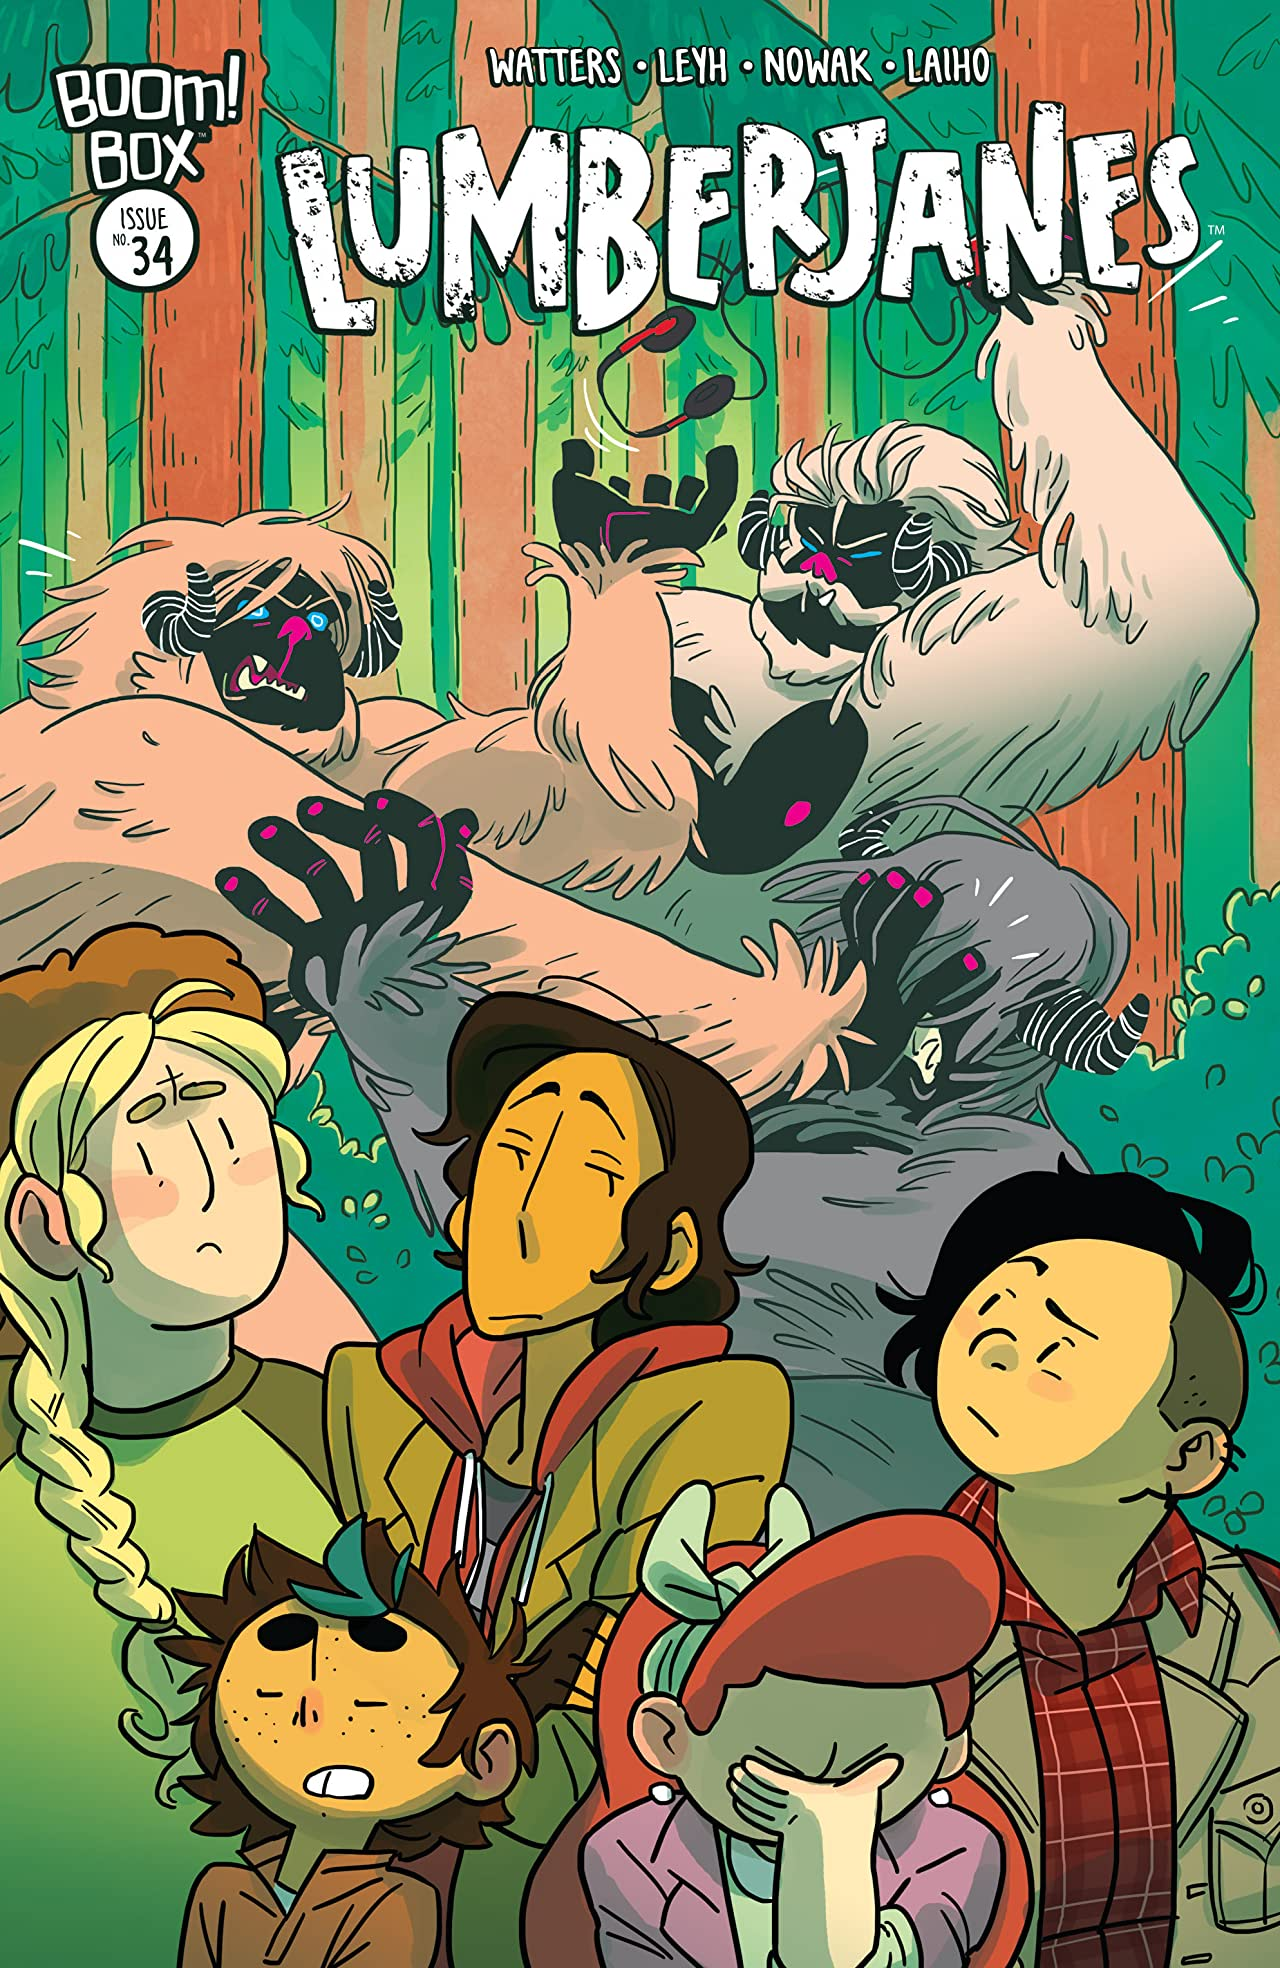 Image result for lumberjanes issue 34